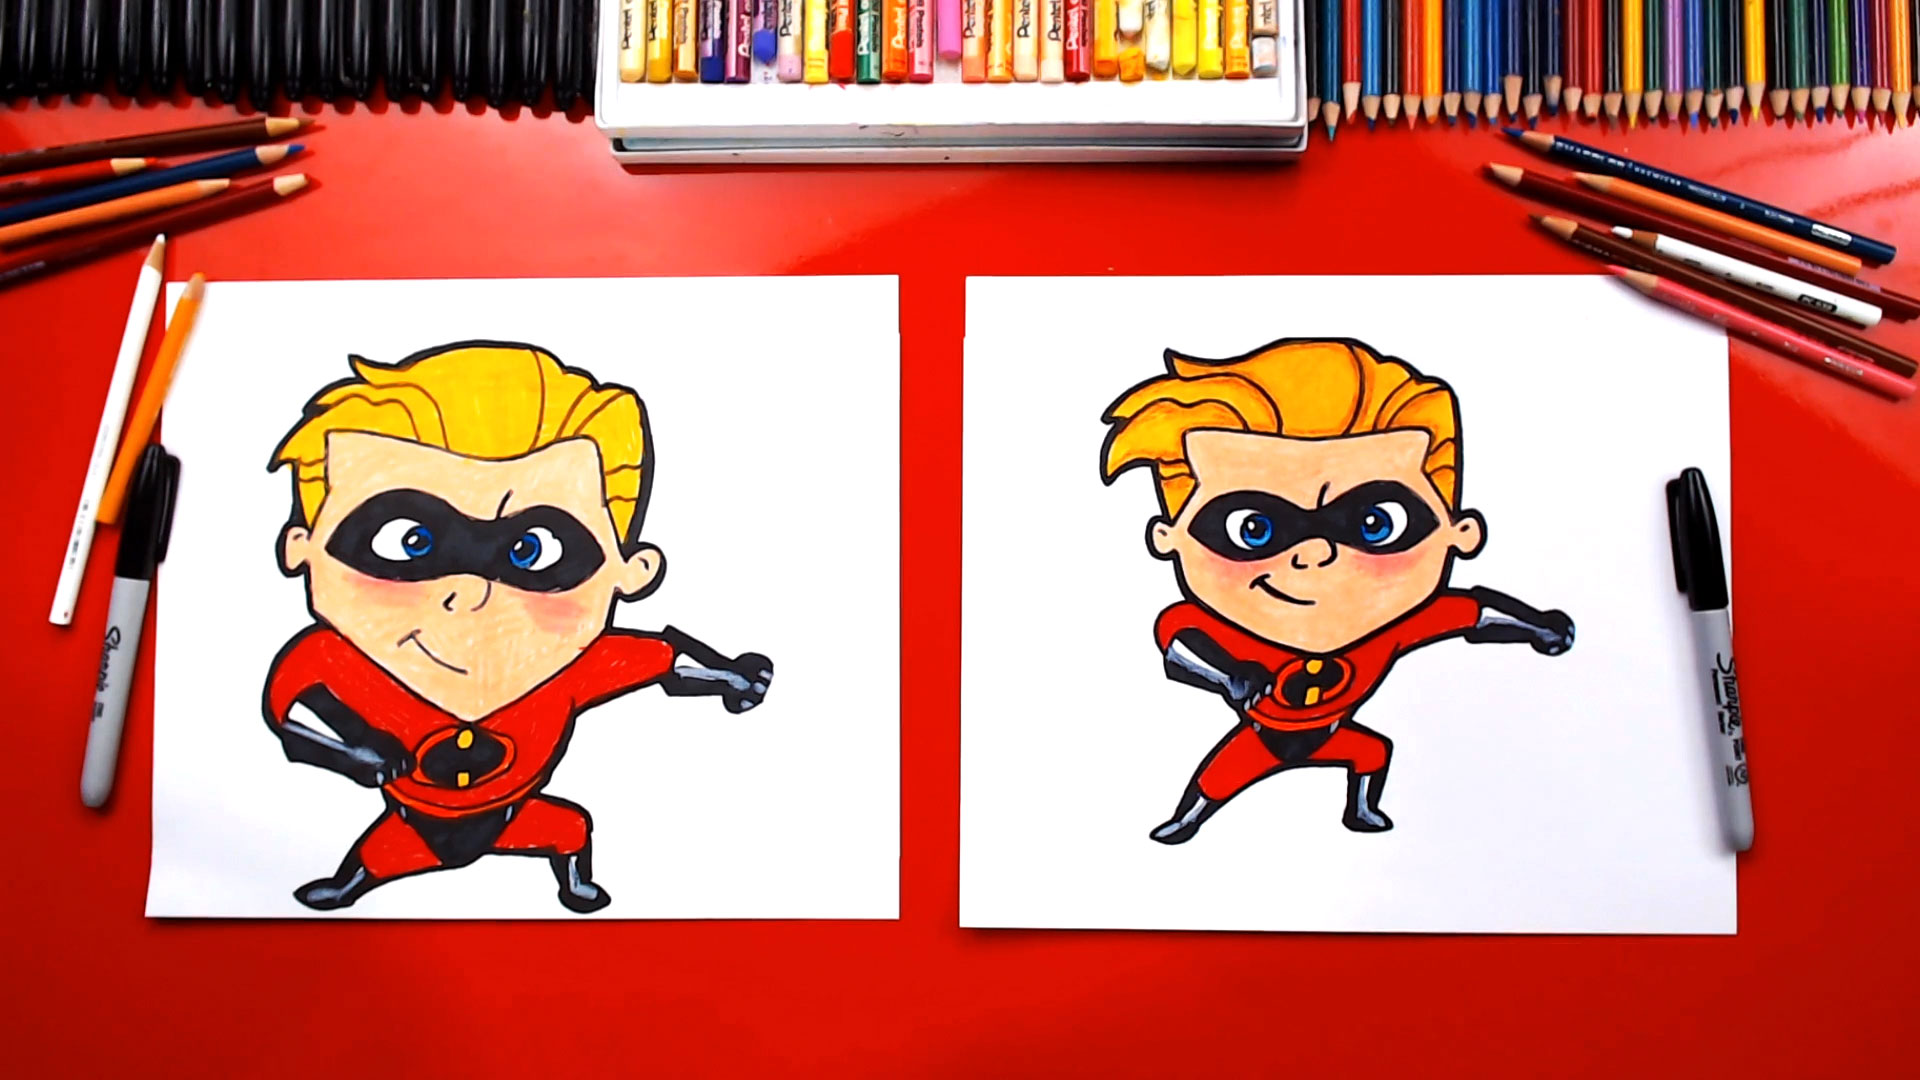 How To Draw Dash From Disney Incredibles 2 - Art For Kids ...